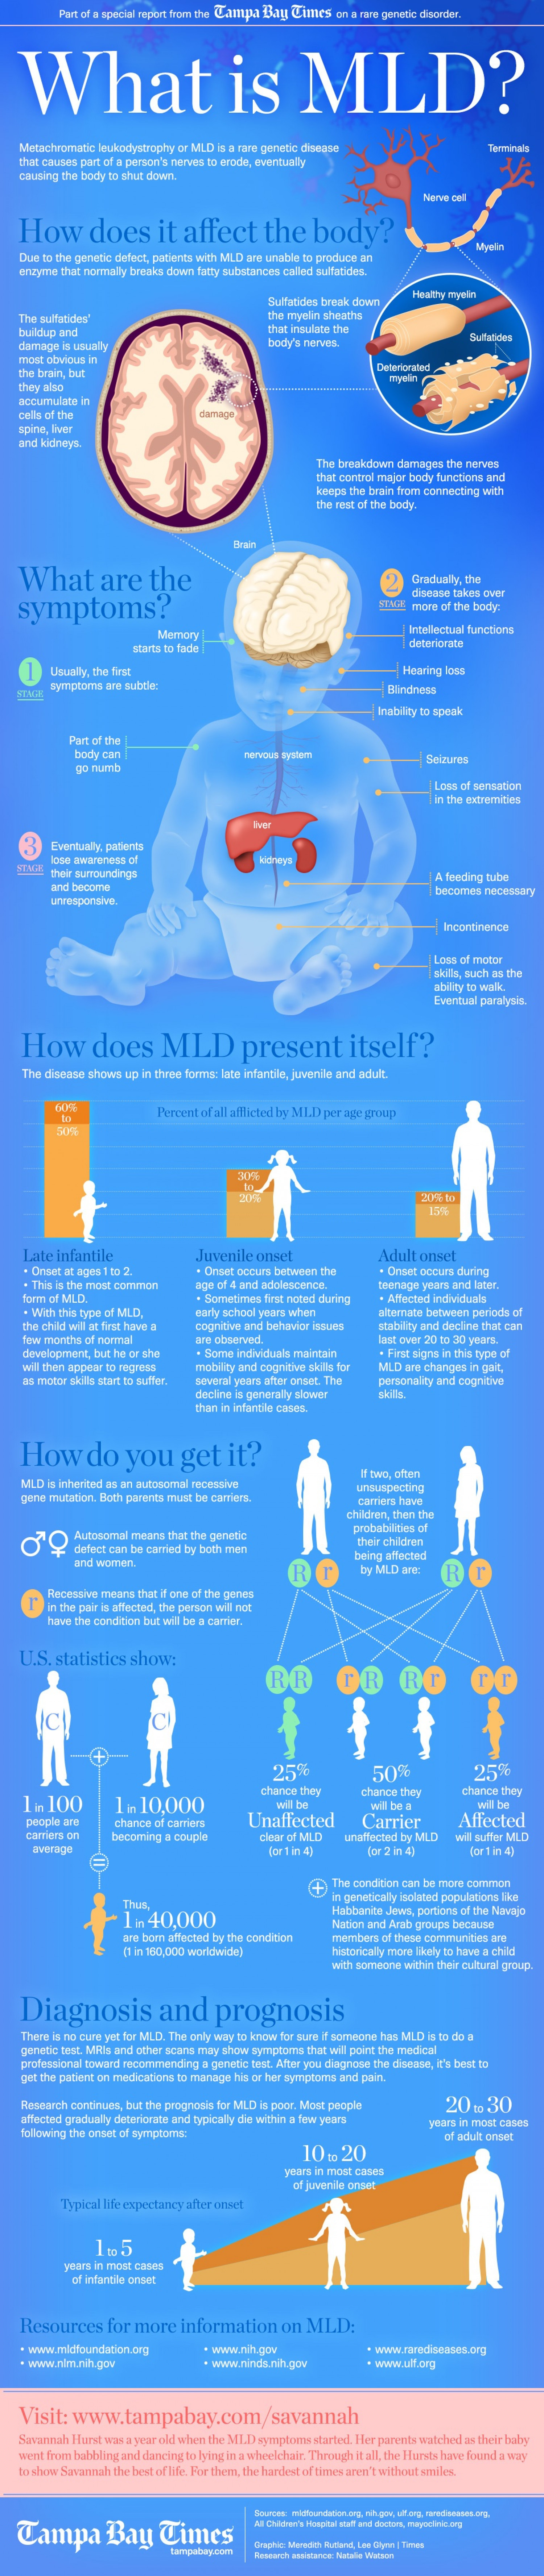 What is MLD? Infographic